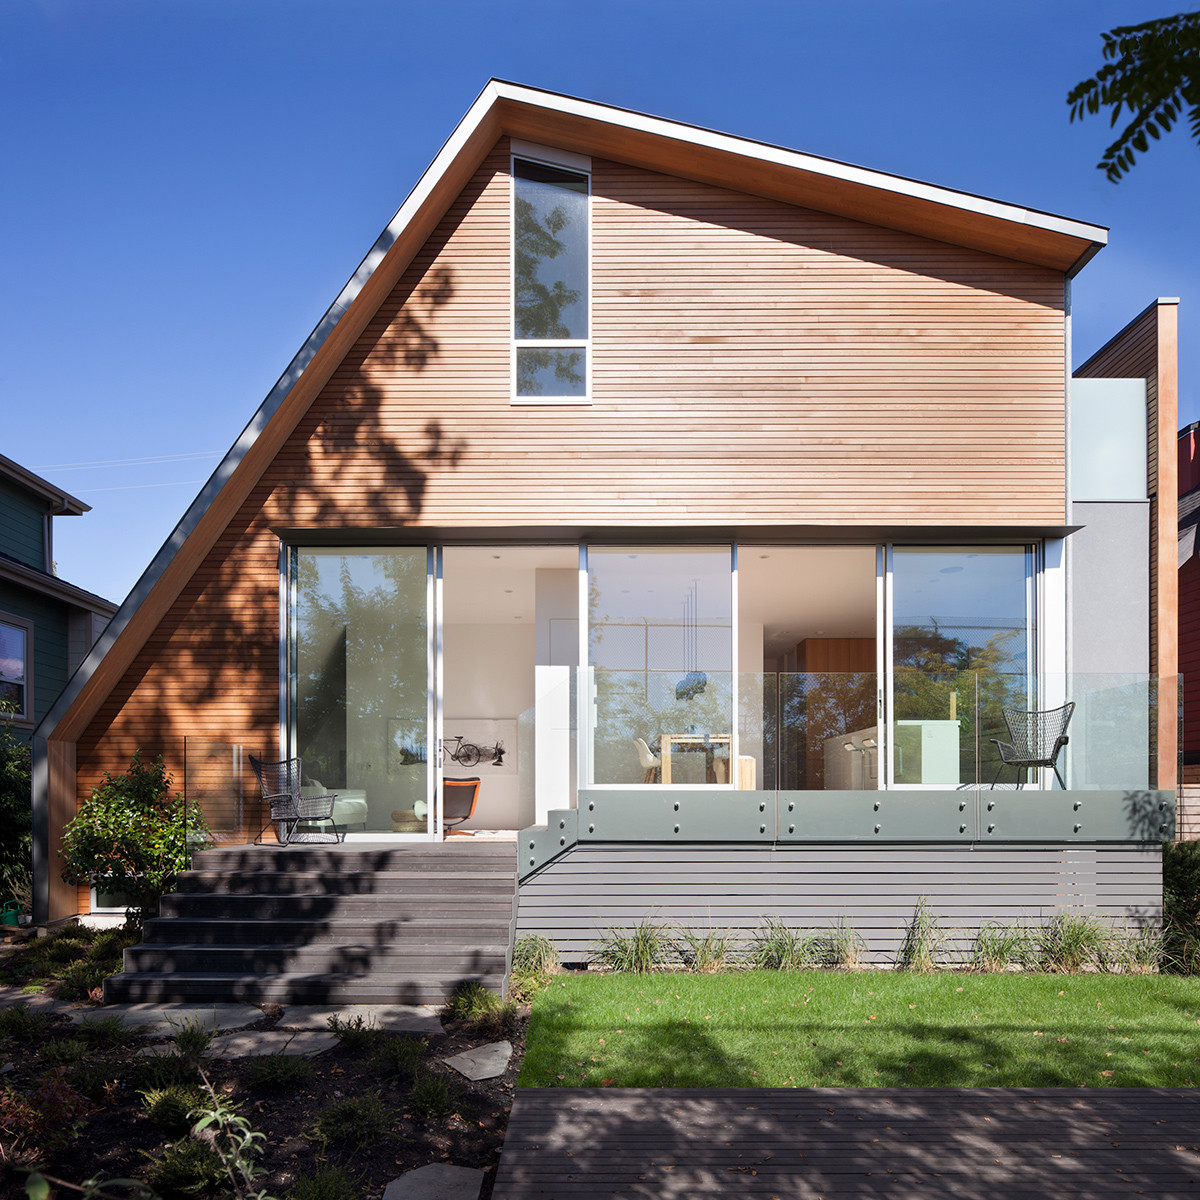 East Van House / Splyce Design, © Ivan Hunter